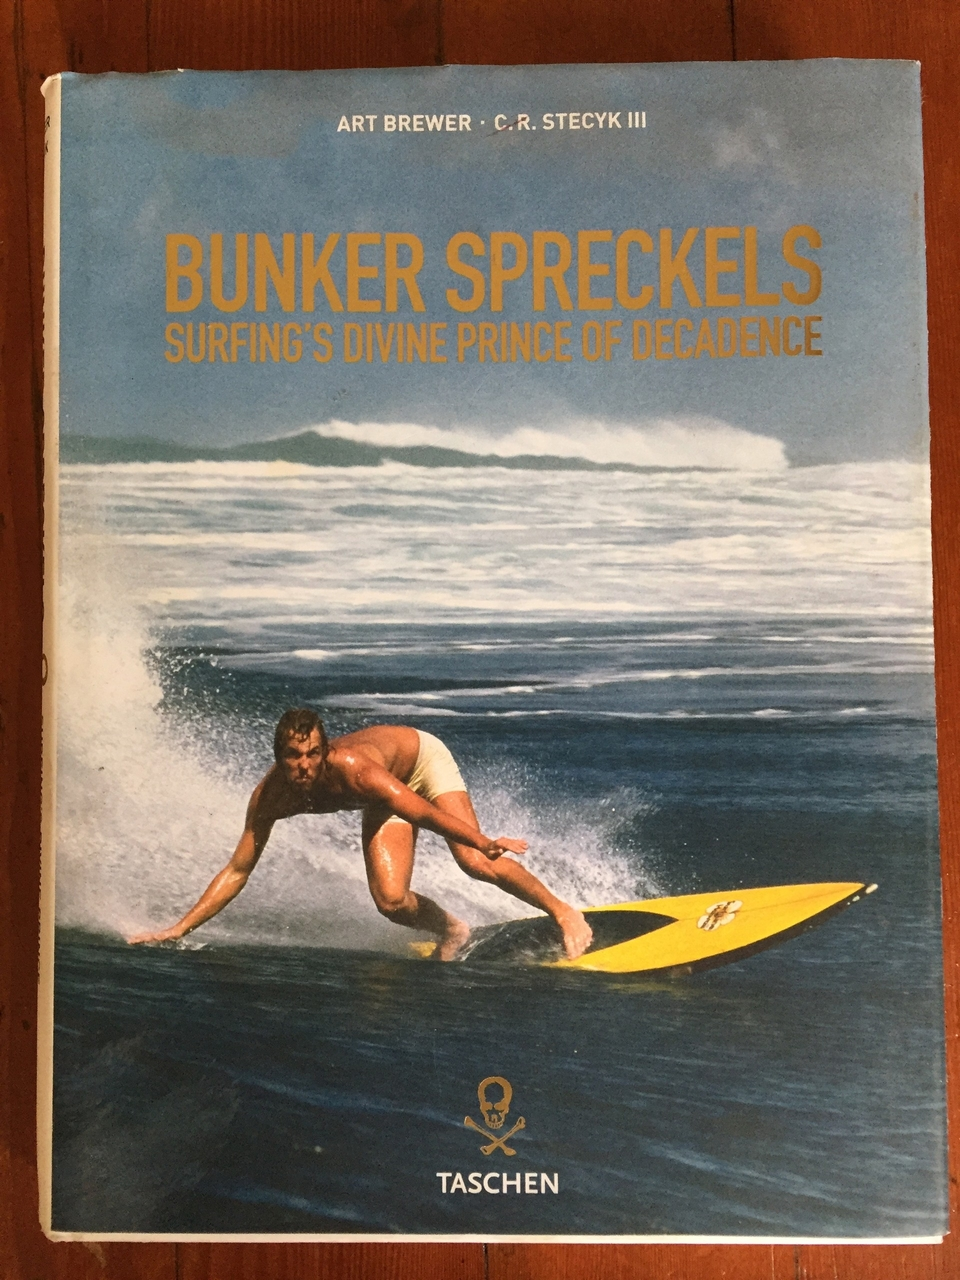 Bunker surfing the North Shore of Kauai, 1973. Taschen book, released in 2007.